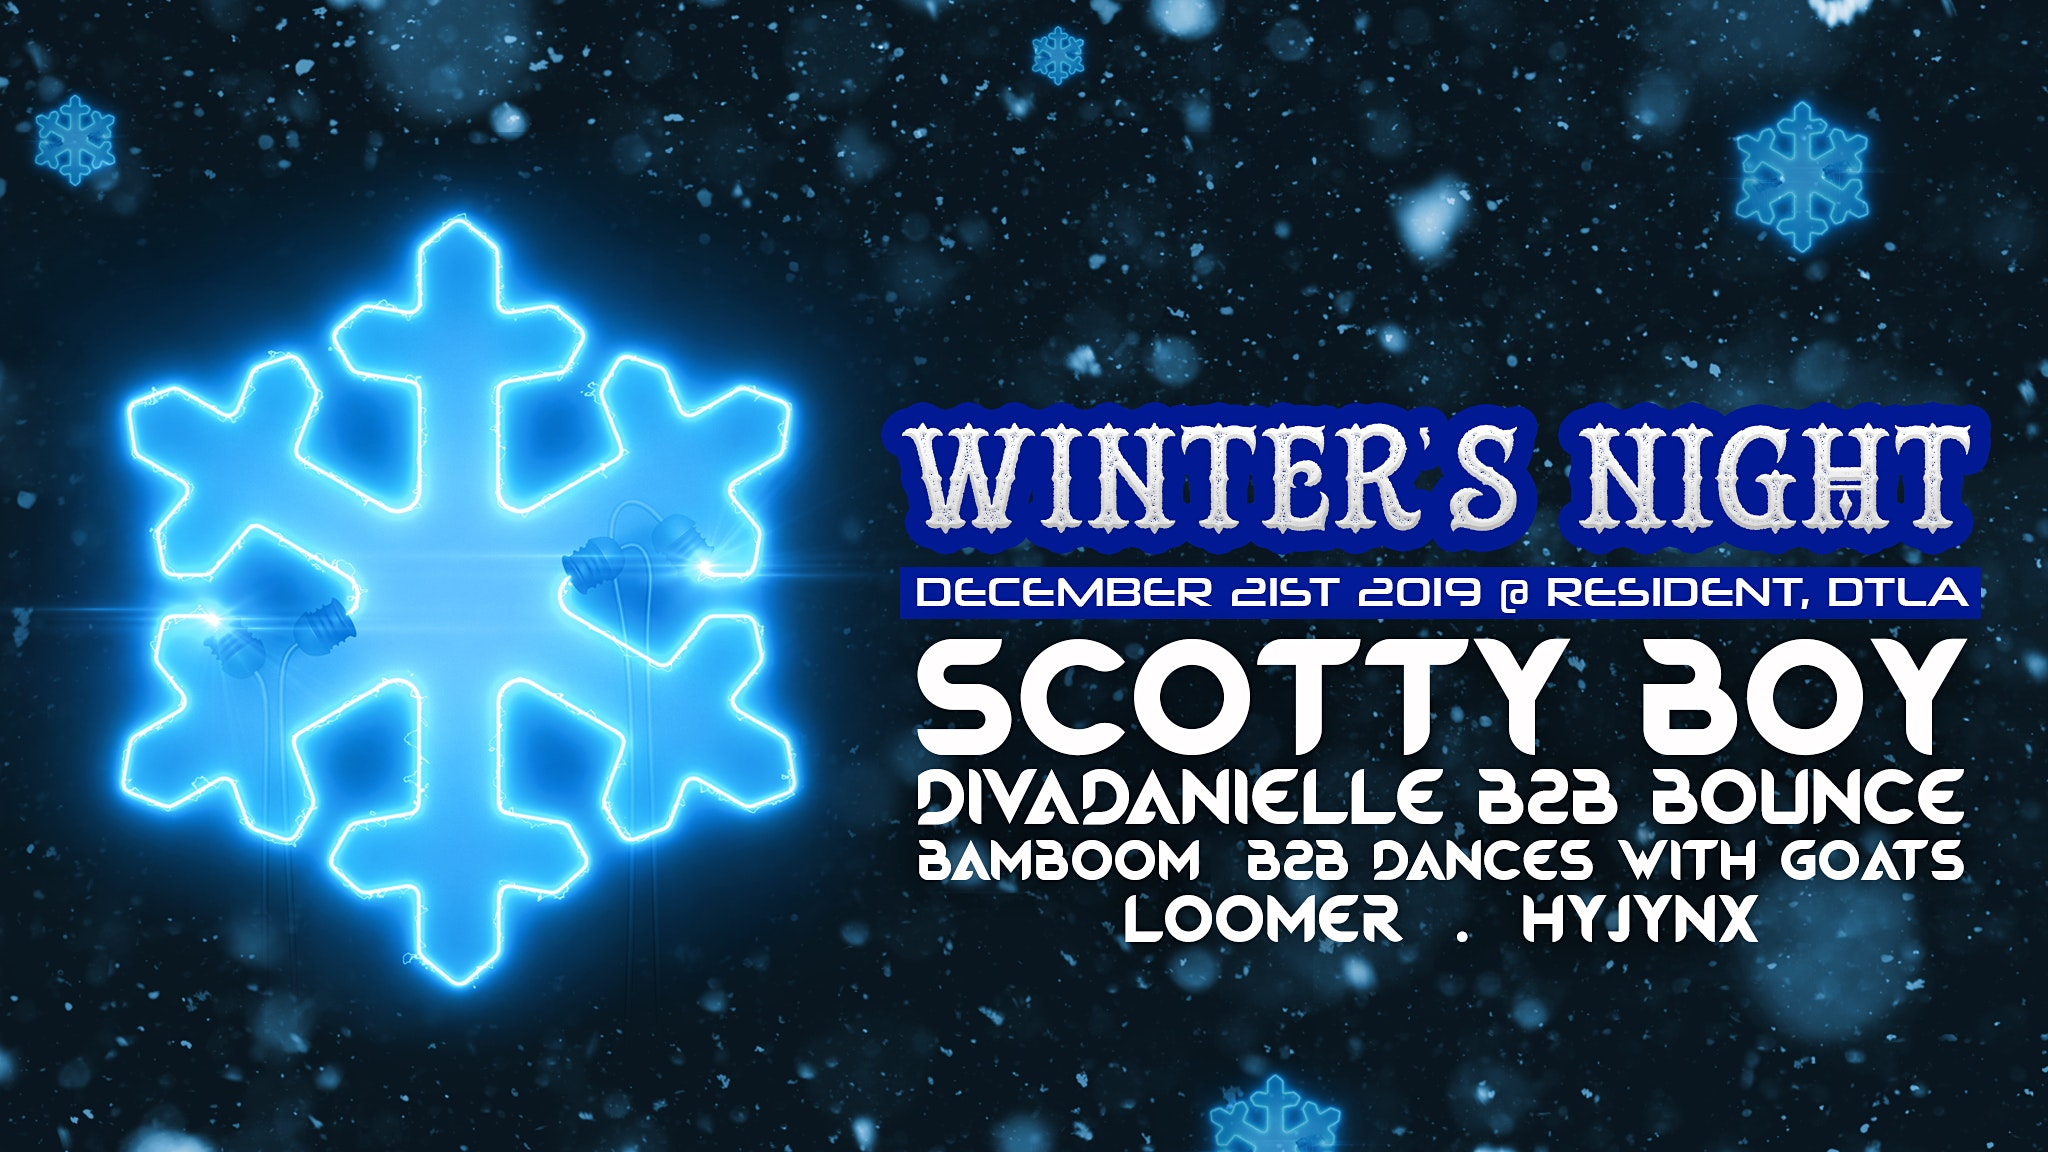 WINTER'S NIGHT Featuring Scotty Boy, Bamboom b2b Dances With Goats & more